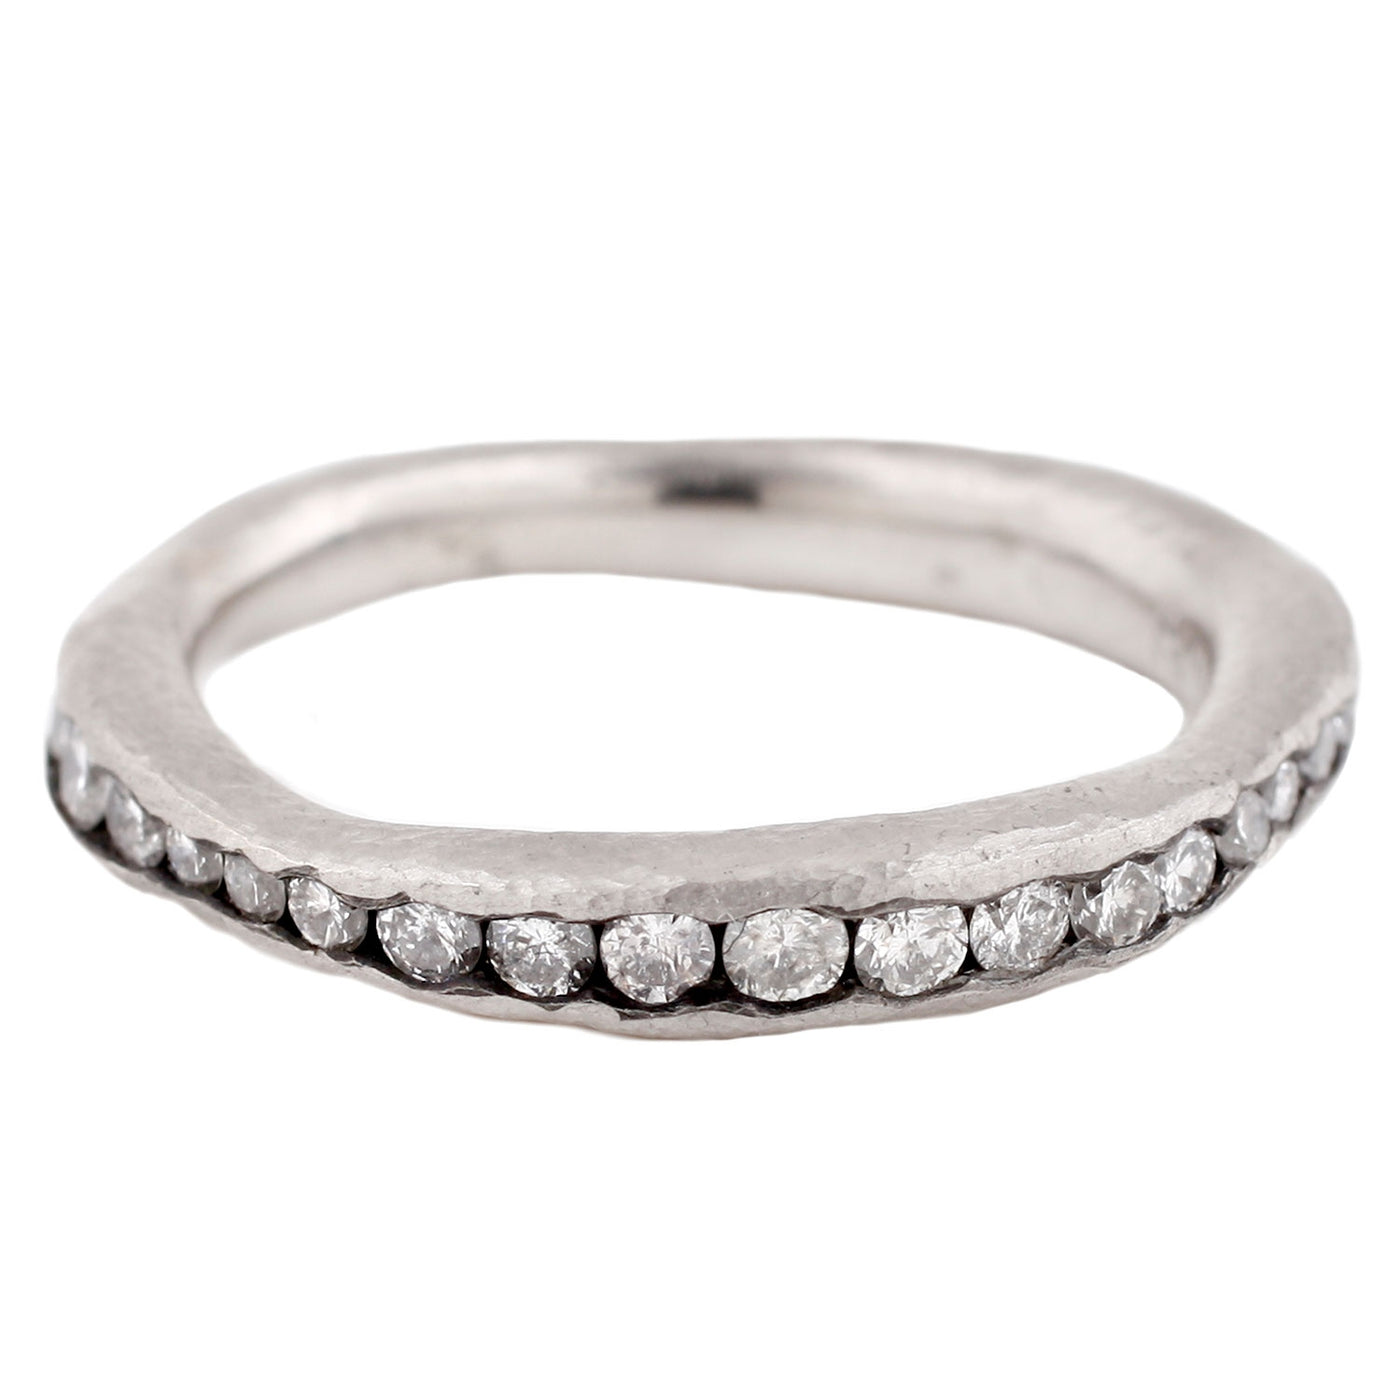 TAP by Todd Pownell White Diamond and Palladium Eternity Band Ring